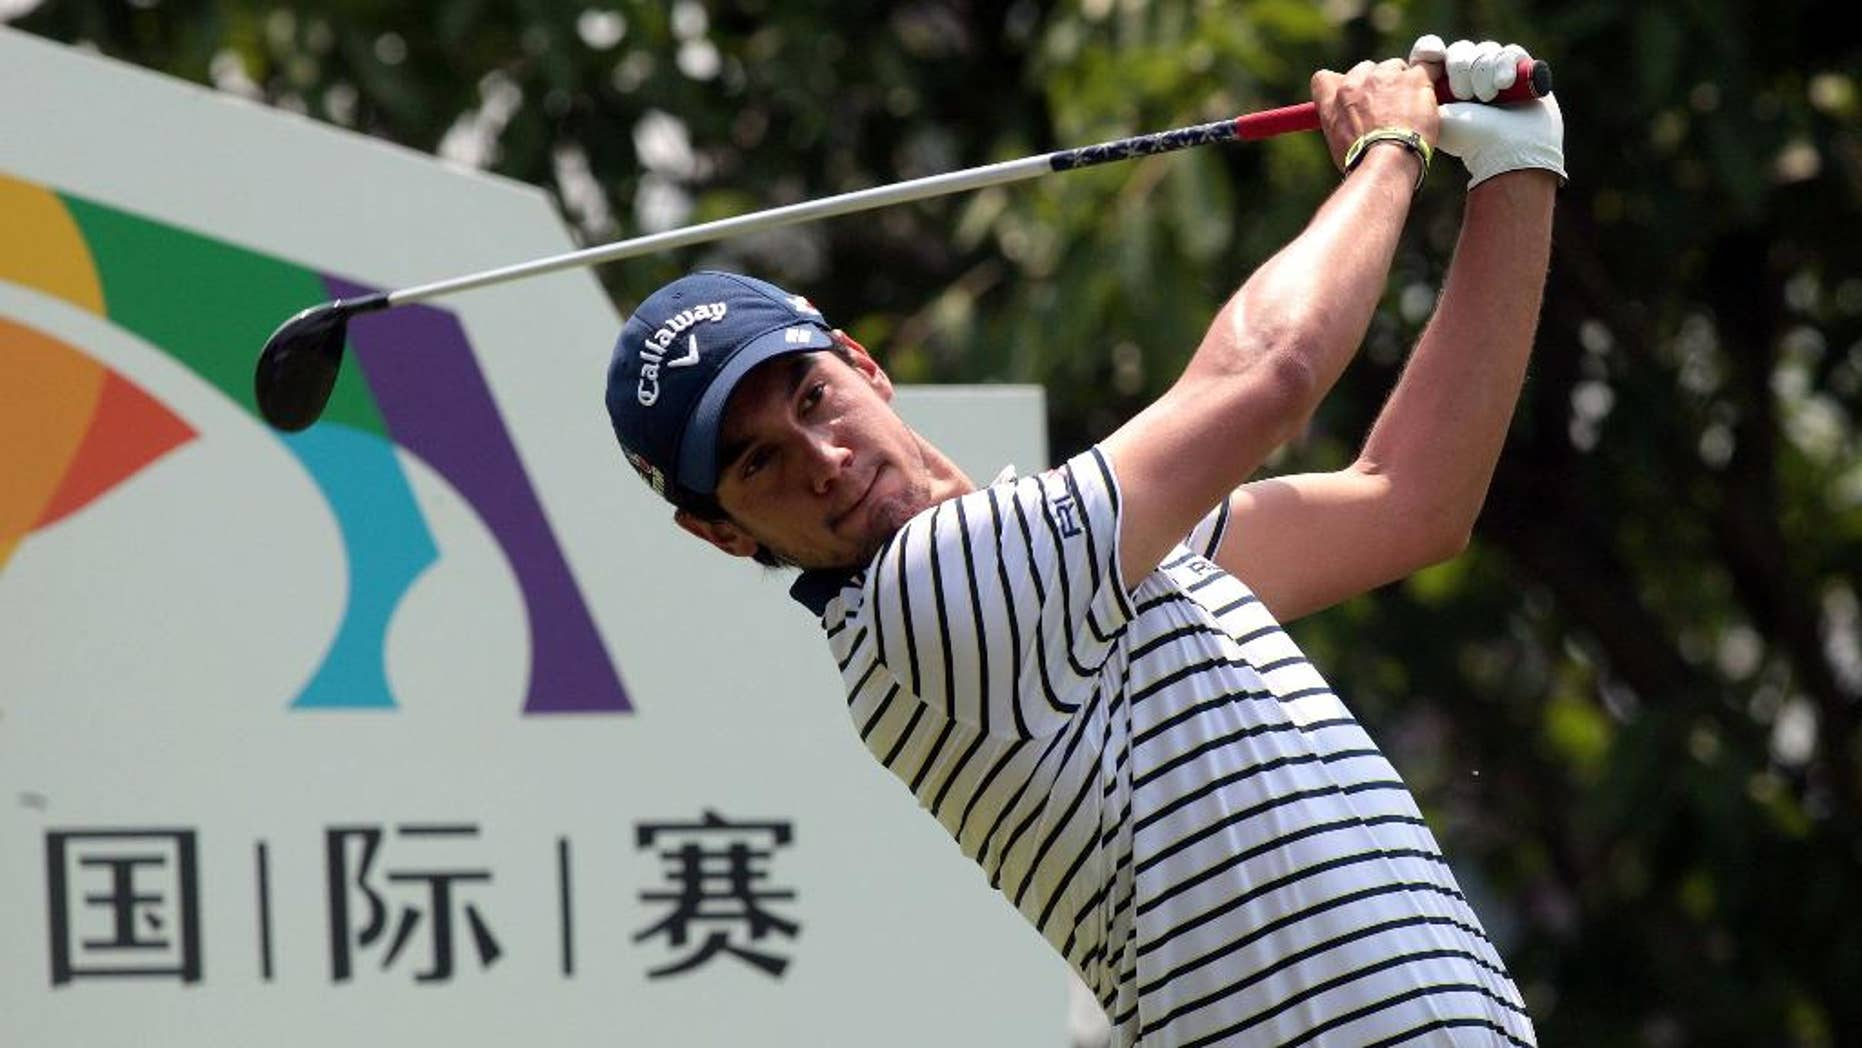 Matteo Manassero of Italy competes during the first round of the Shenzhen International golf tournament at Genzon Golf Club in Shenzhen in southern China's Guangdong Province, Thursday, April 16, 2015. (Chinatopix Via AP) CHINA OUT